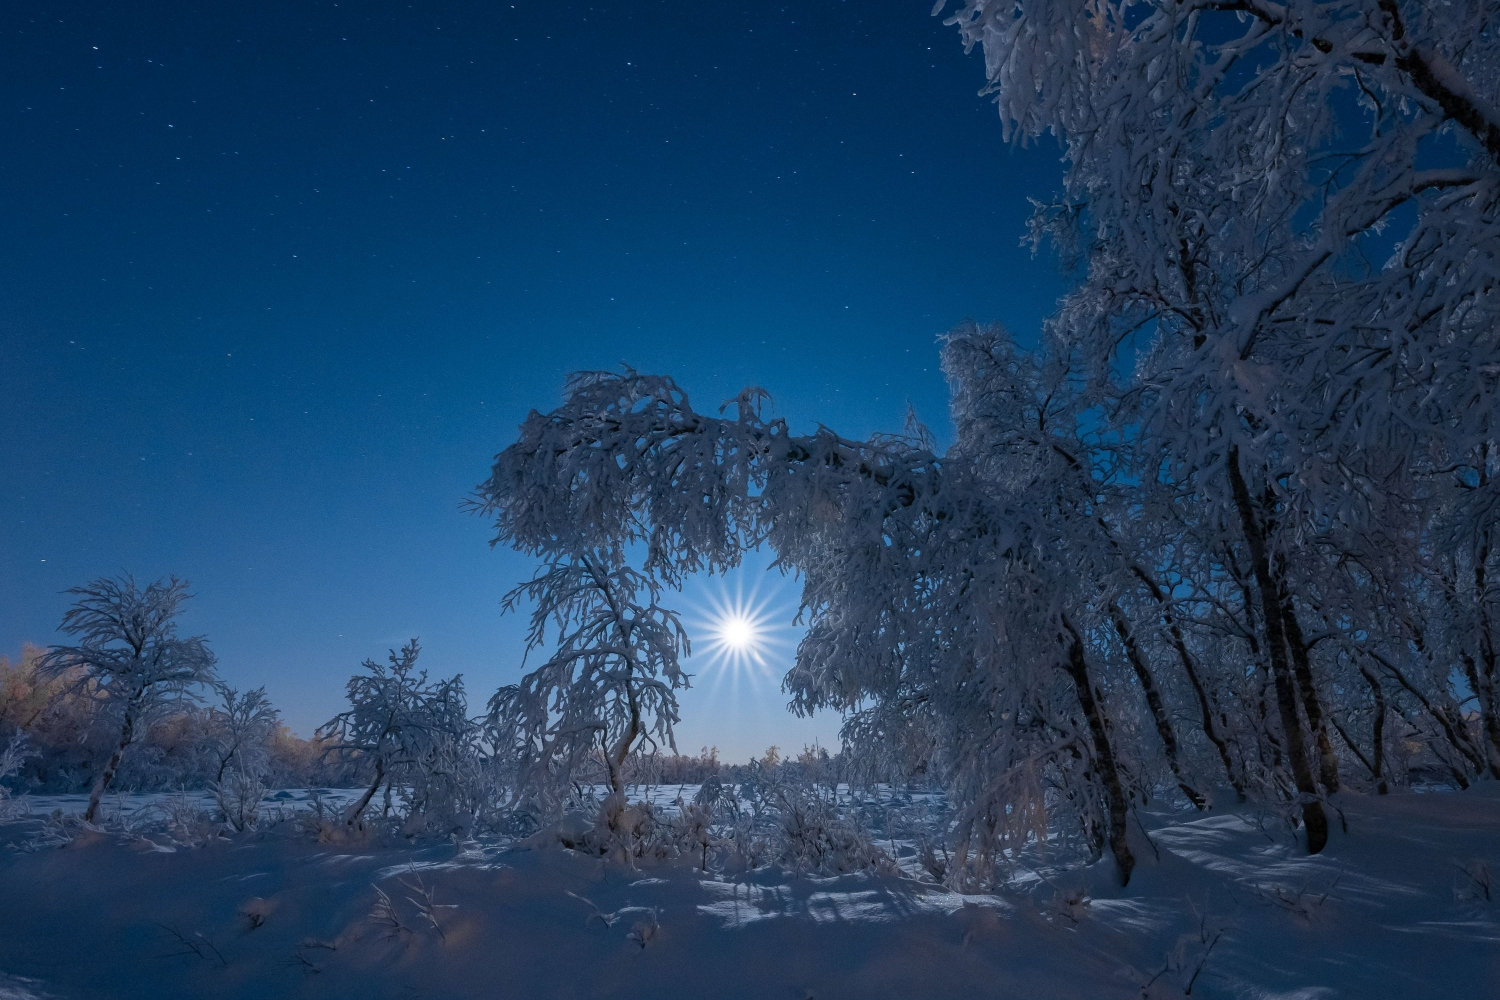 Arctic light and moonlight in snowy arctic landscape